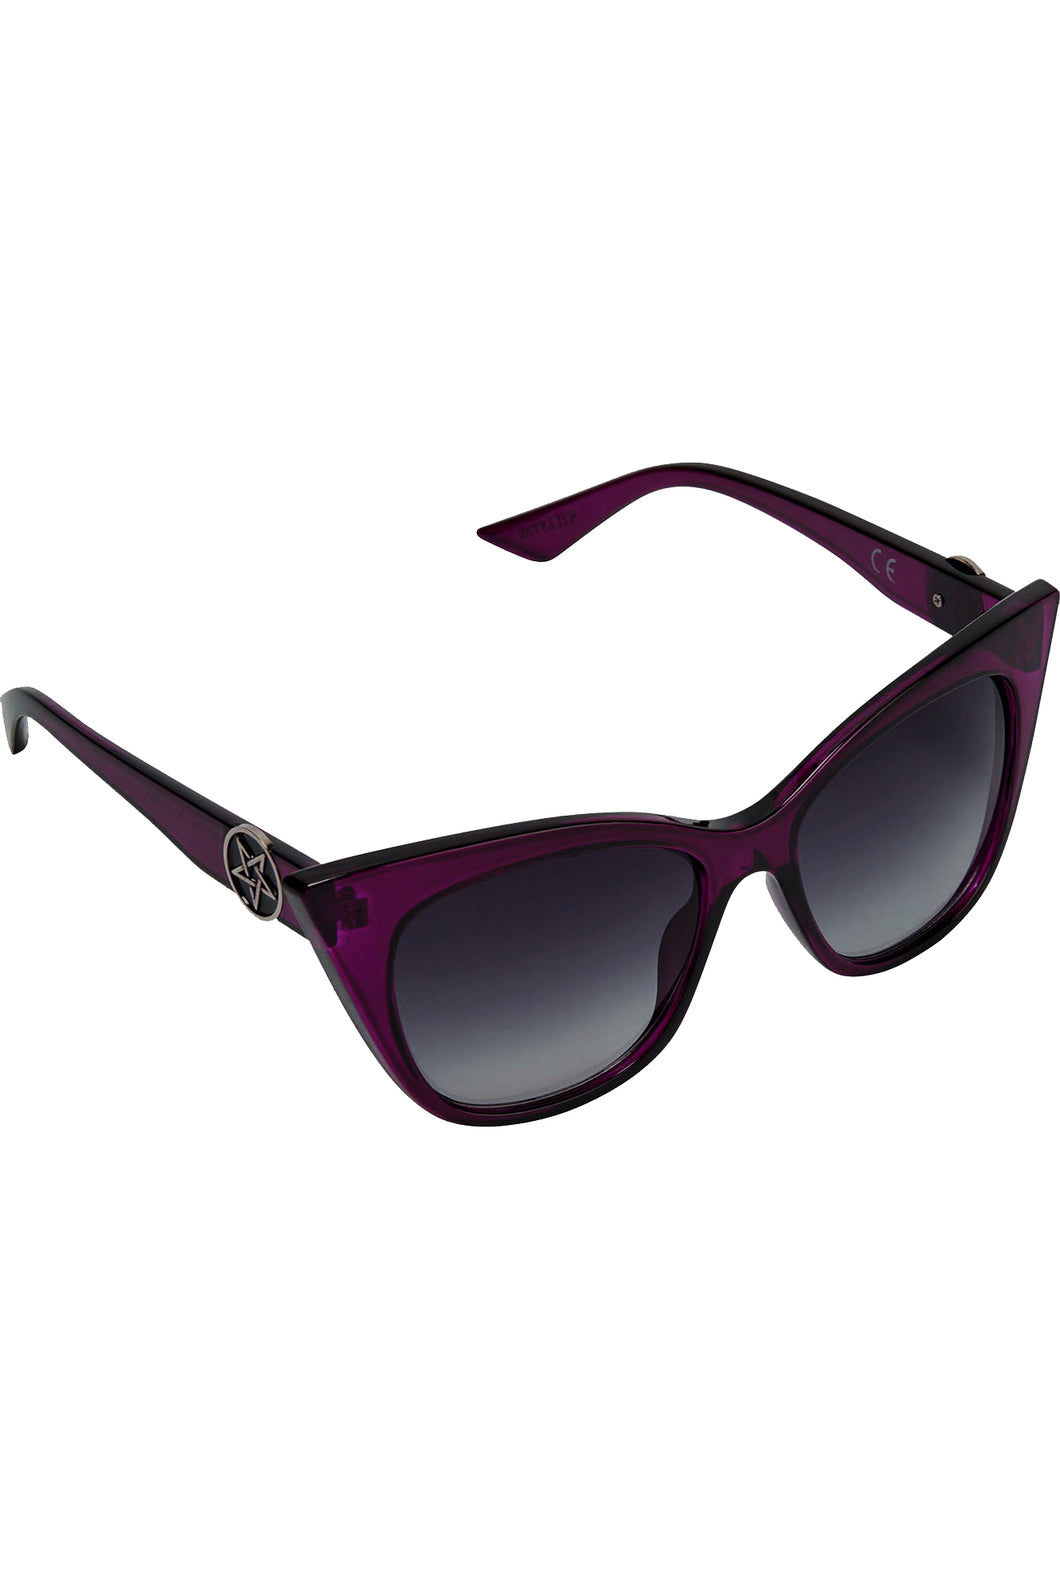 Killstar Rayz Up Sunglasses - Plum - Kate's Clothing